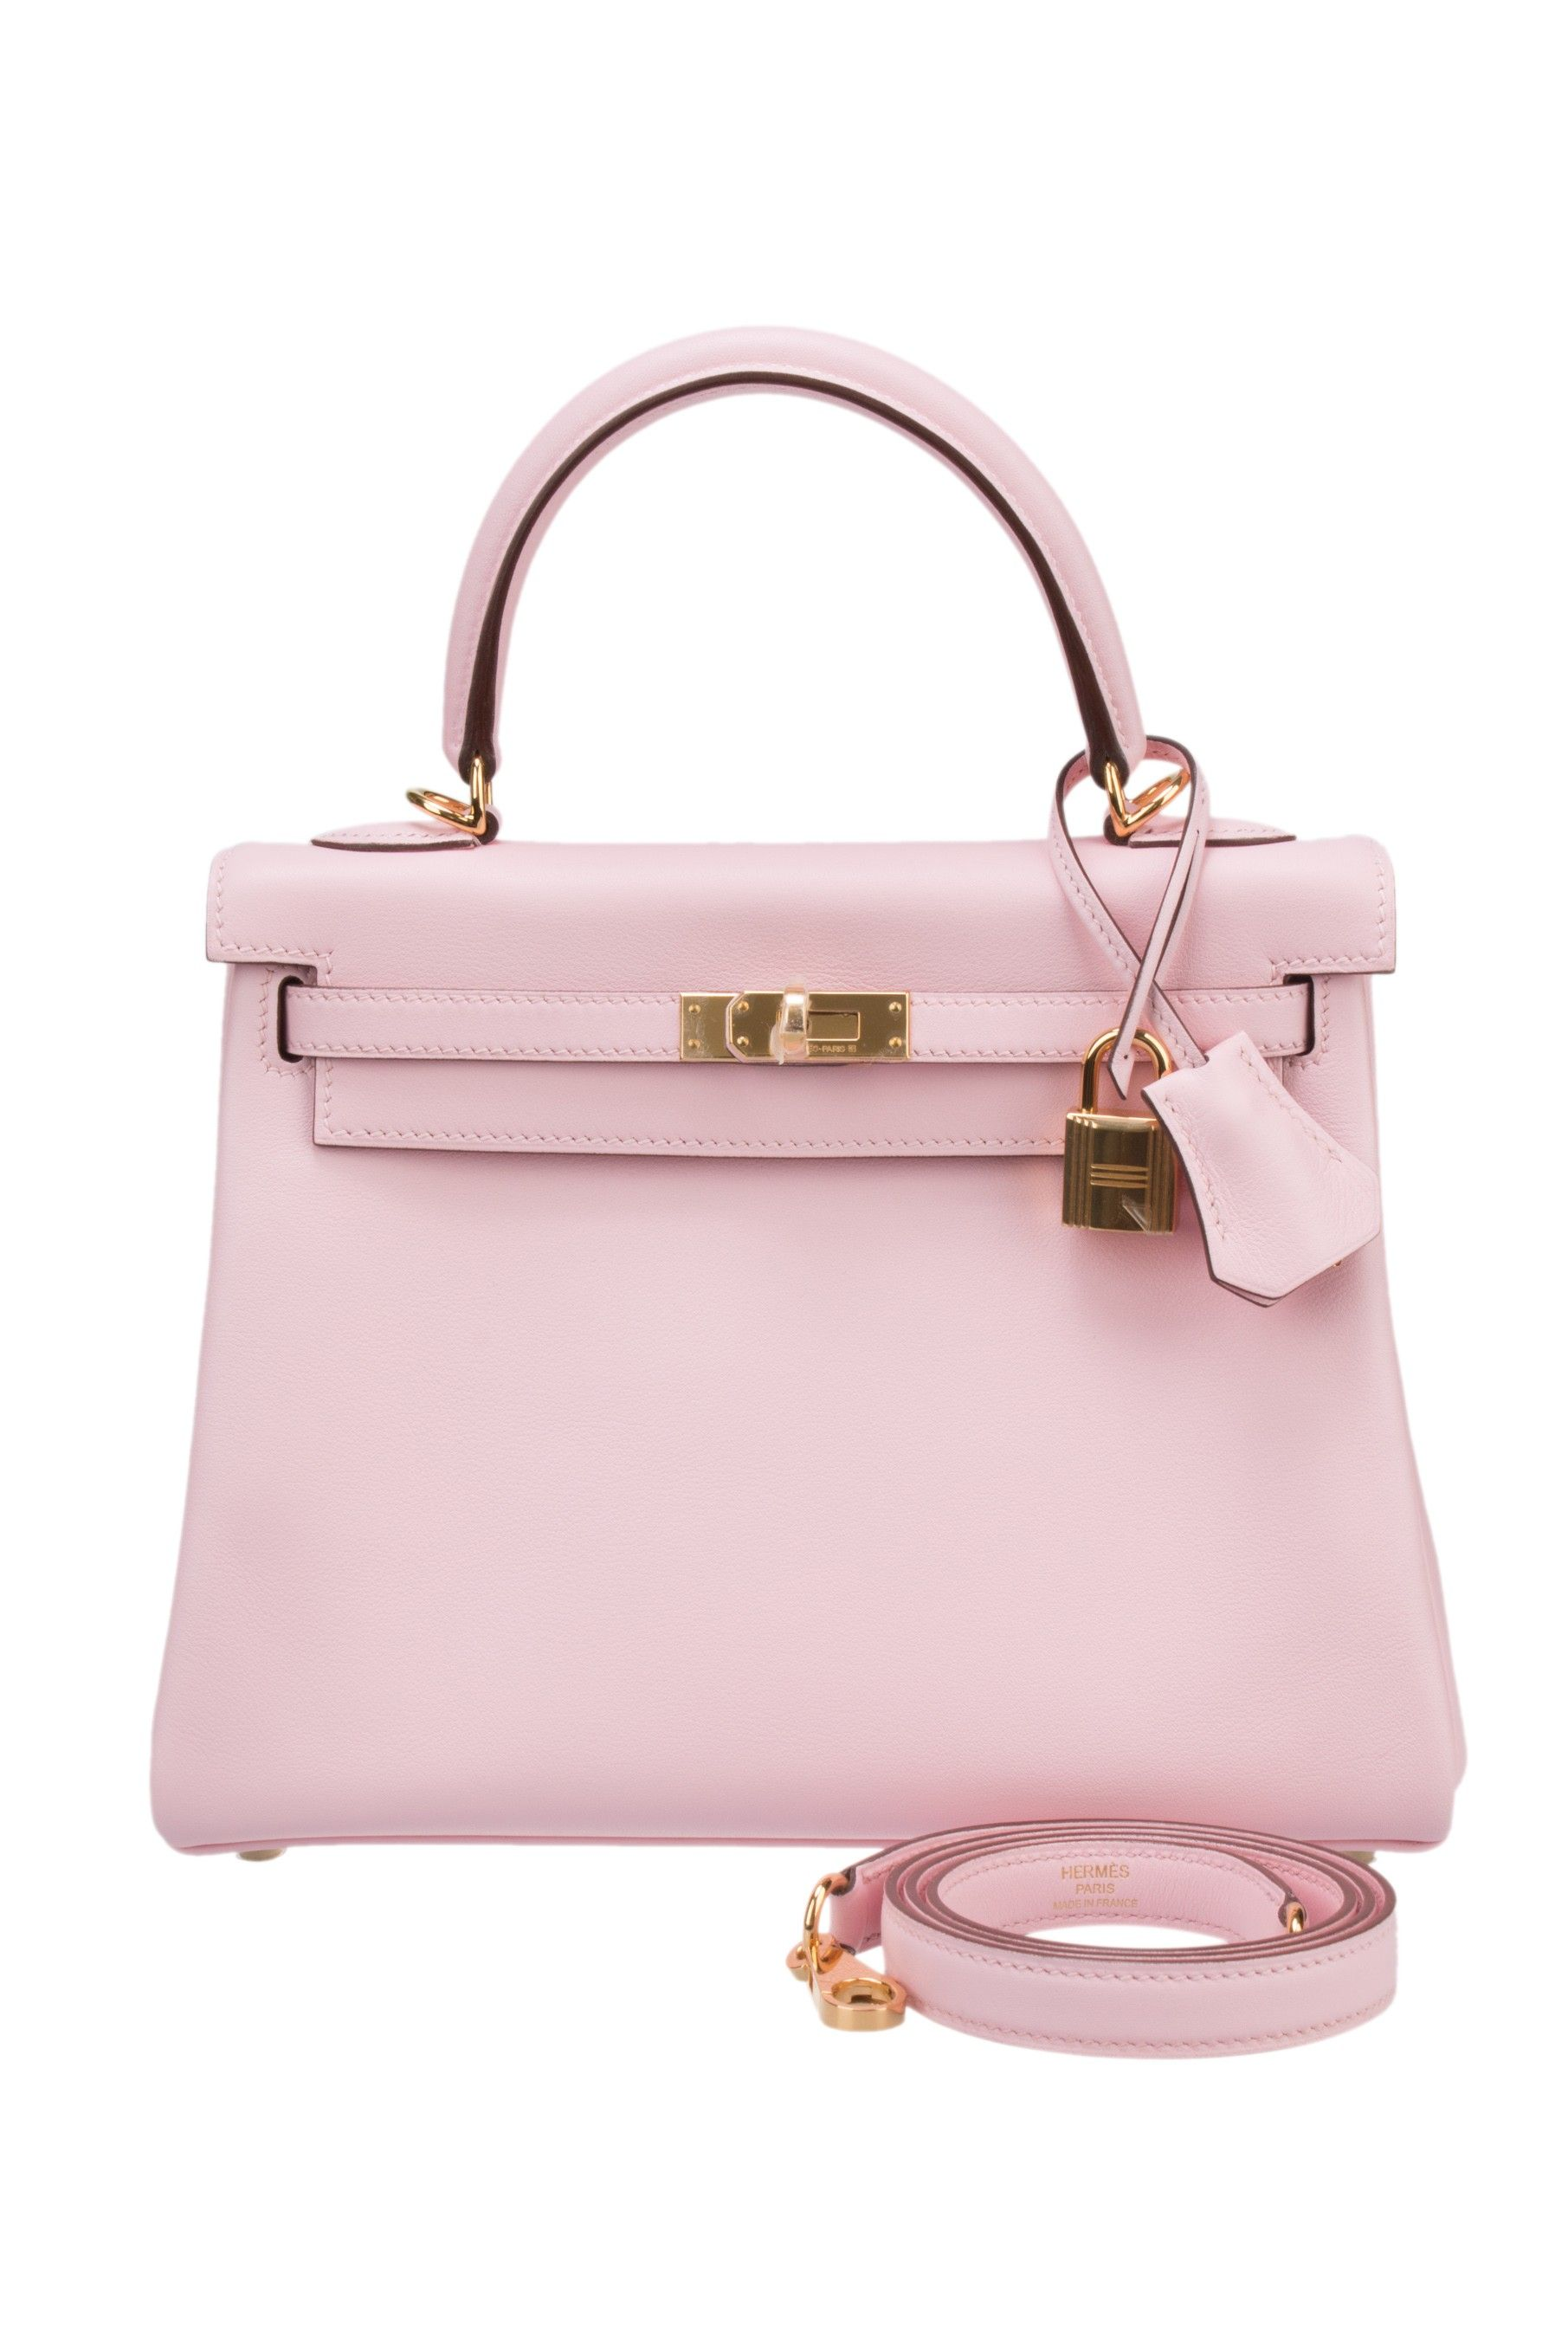 Hermes Rose Sakura Swift 25cm Kelly Bag with Gold Hardware   Bling ... b95eb49f35